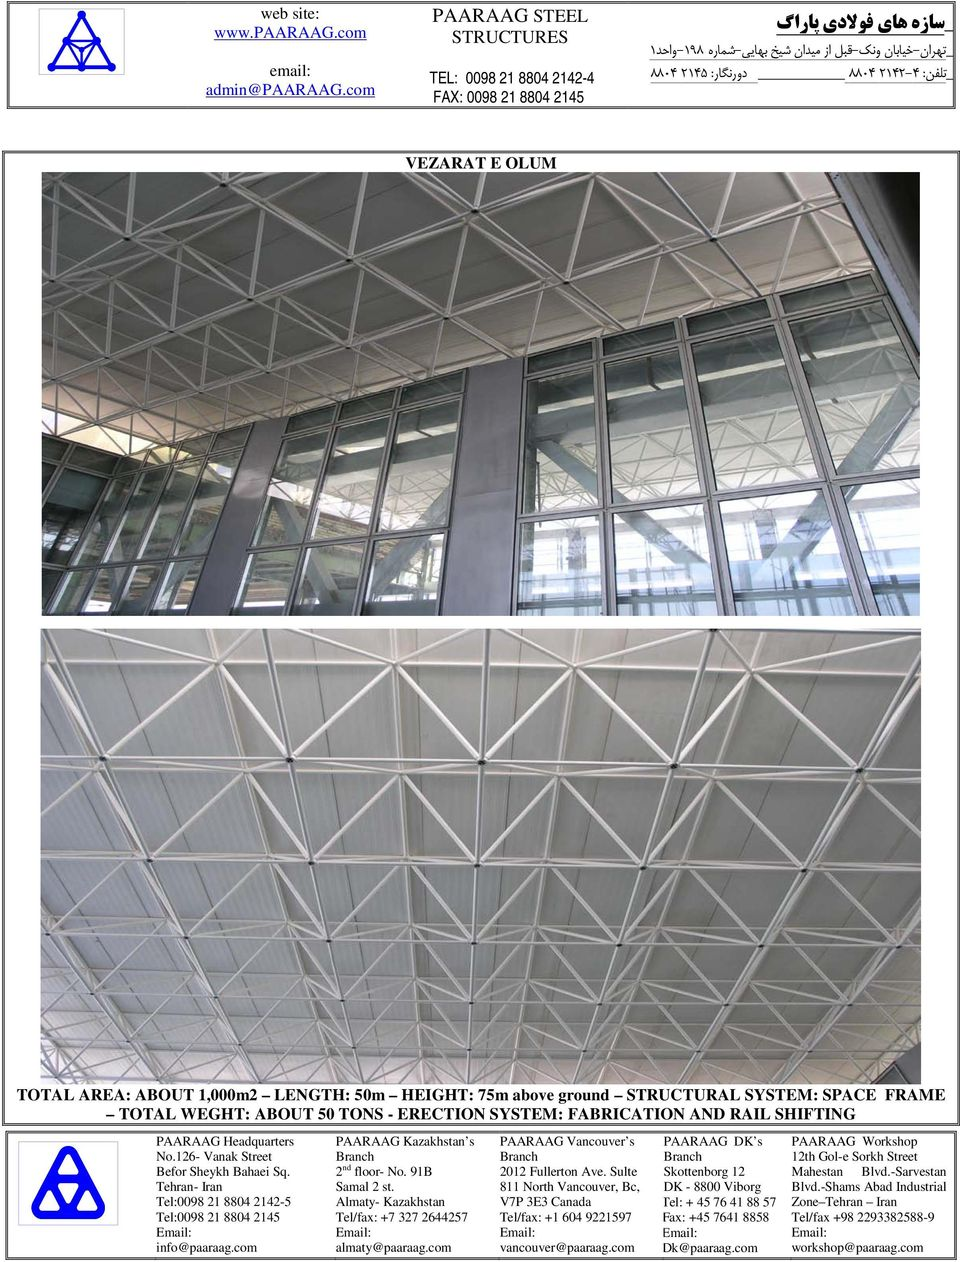 STRUCTURAL SYSTEM: SPACE FRAME TOTAL WEGHT: